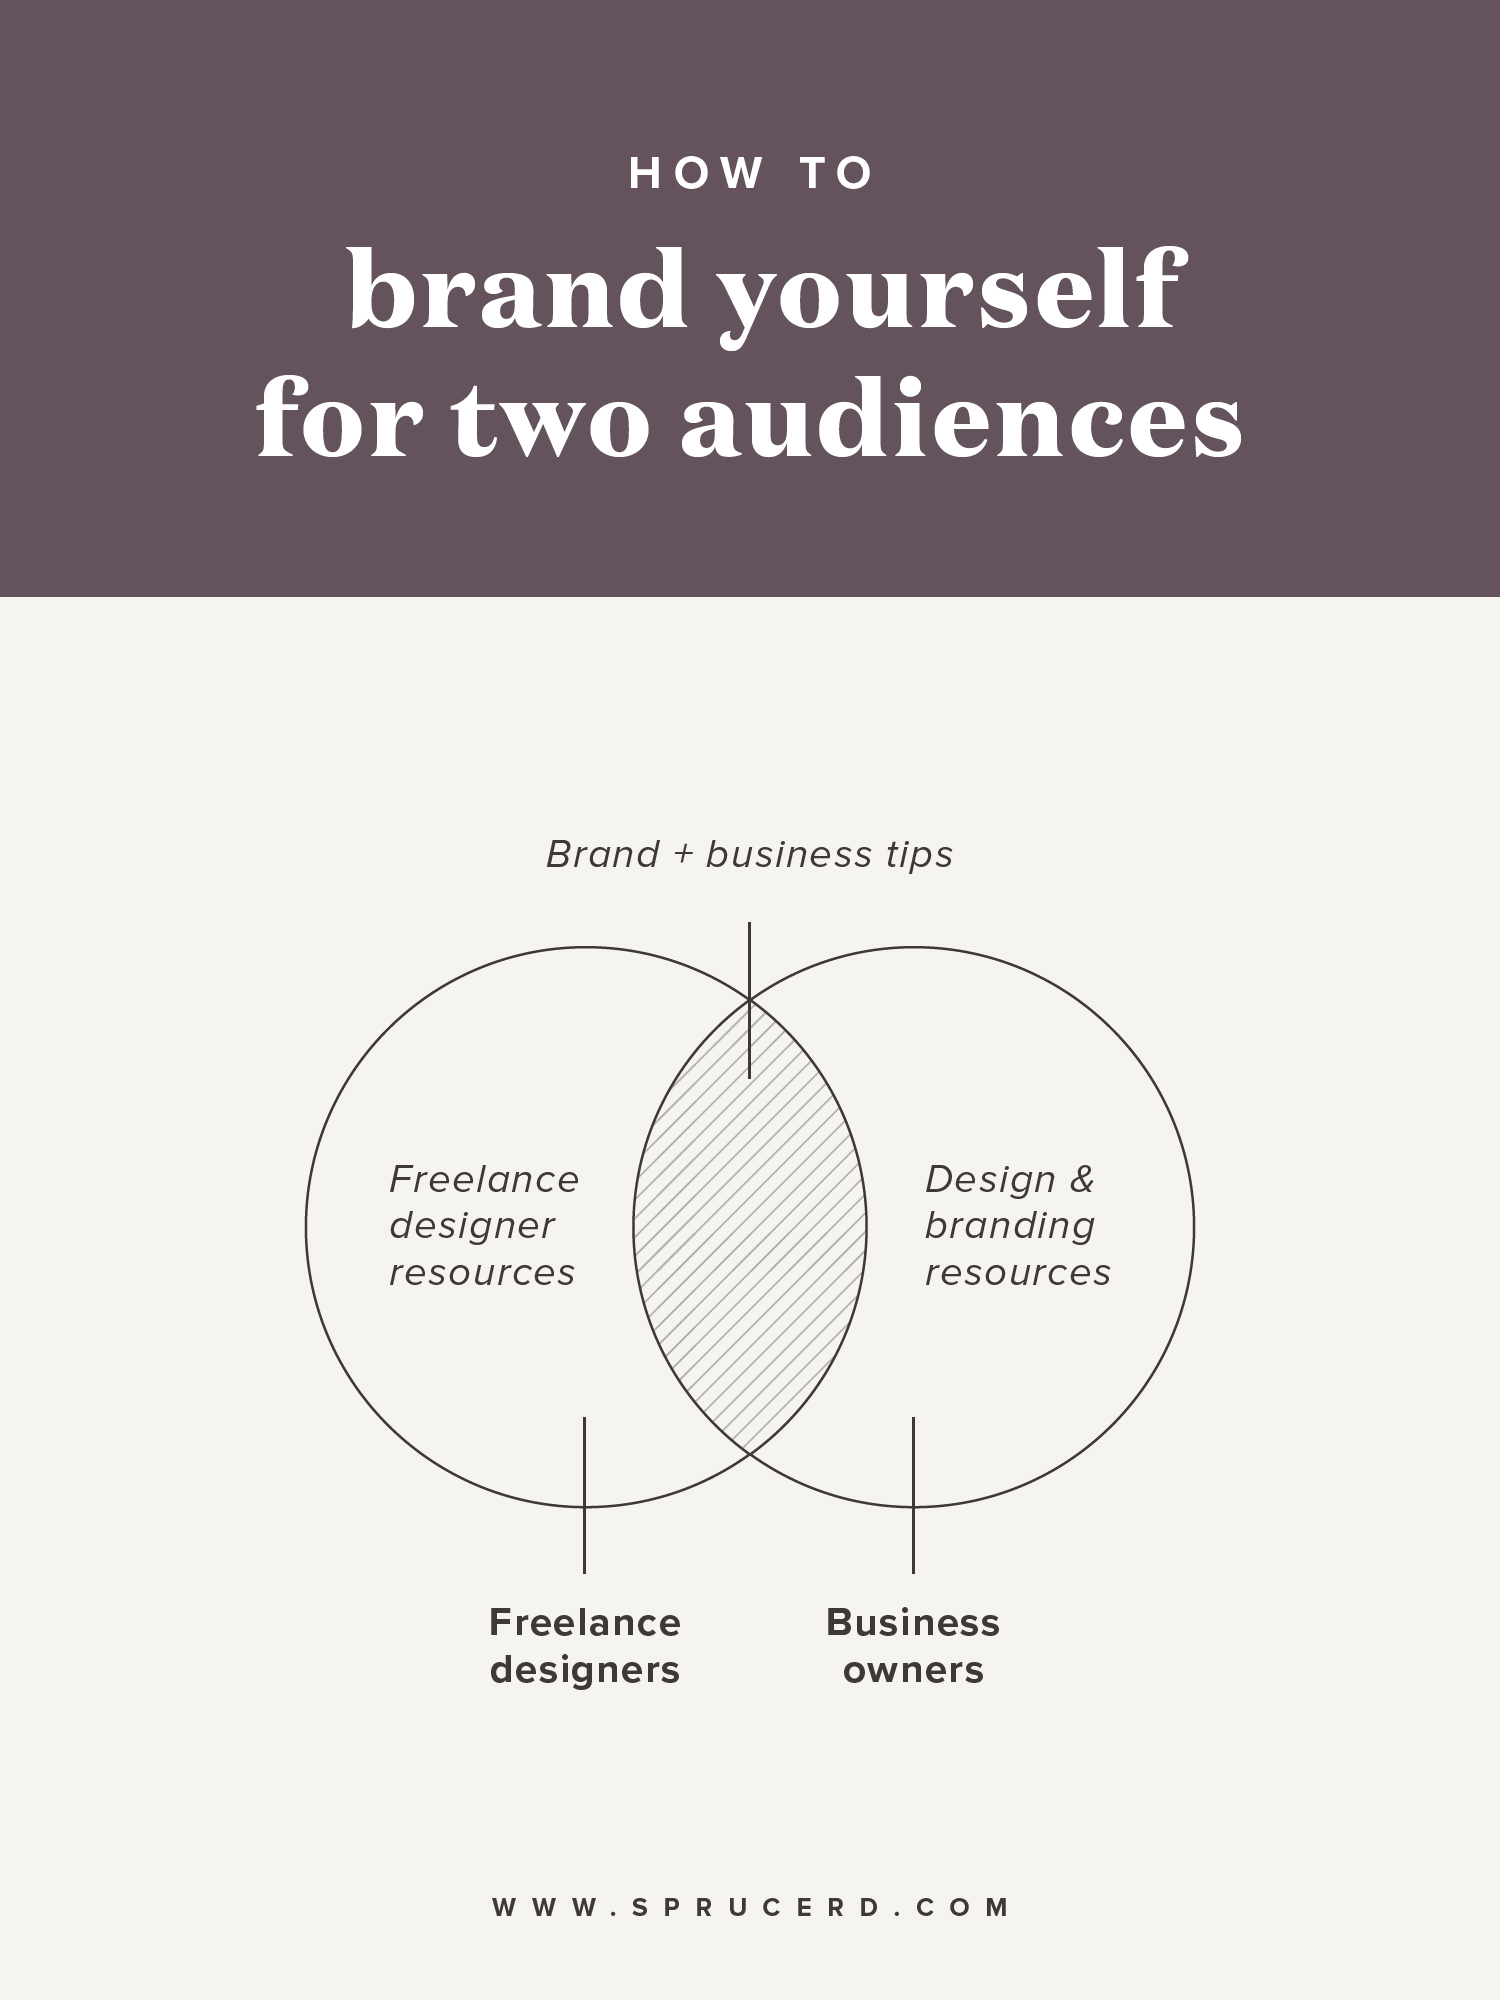 """How to brand yourself for two audiences   Spruce Rd.   """"Niche your brand."""" This is a common phrase preached to us regarding our brands. But what if you have multiple audiences, passions and products? Do you have to limit your focus to only one? And if you choose to not limit your audiences, how can you speak to 2 audiences at once?"""